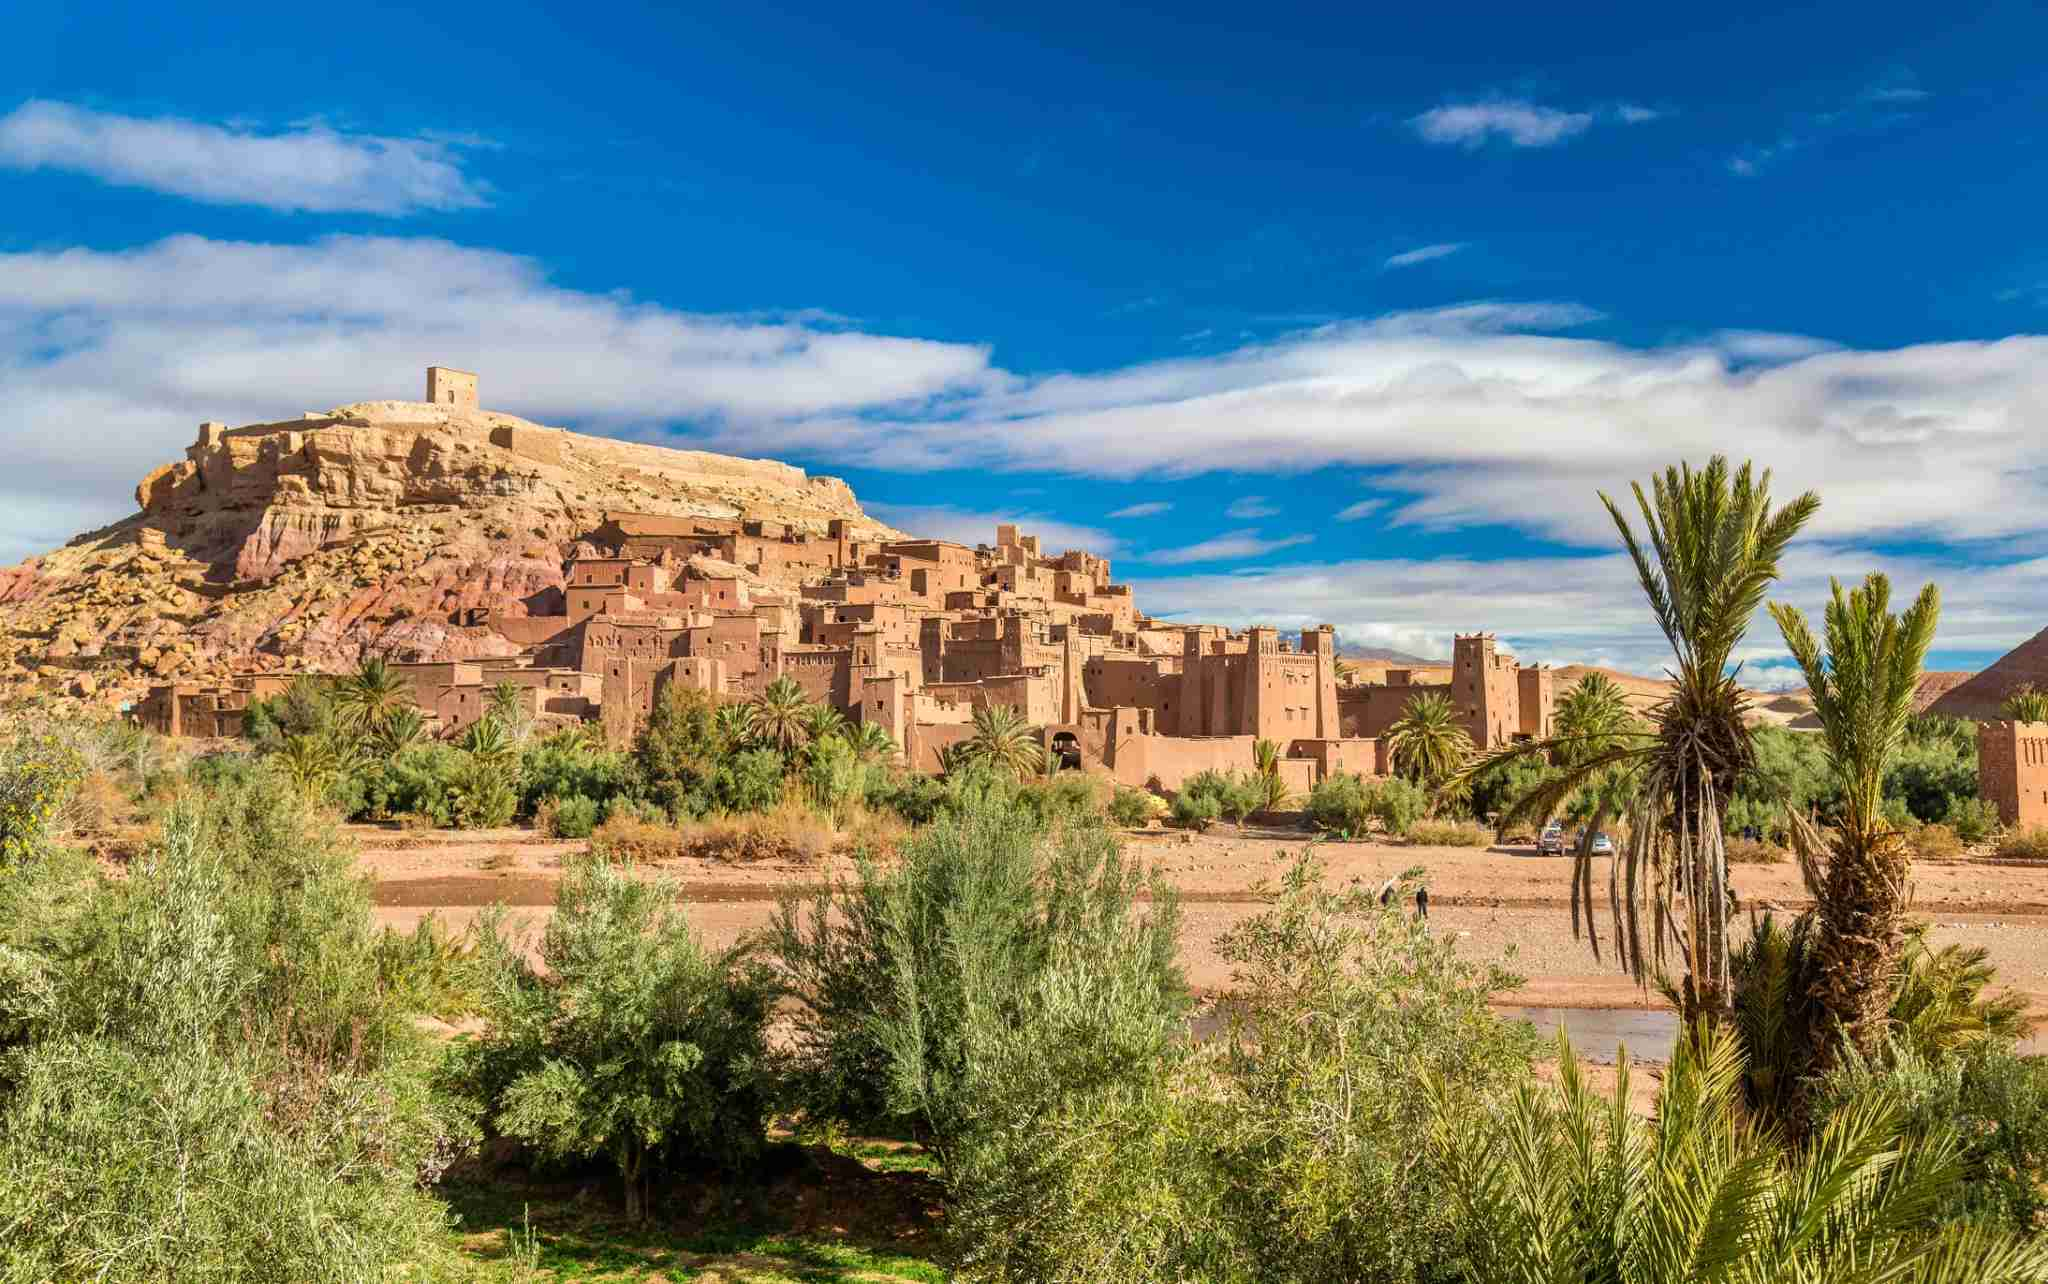 Ait-Ben-Haddou, otherwise known as the GOT city of Yunkai. Image courtesy of Leonid Andronov via Getty Images.